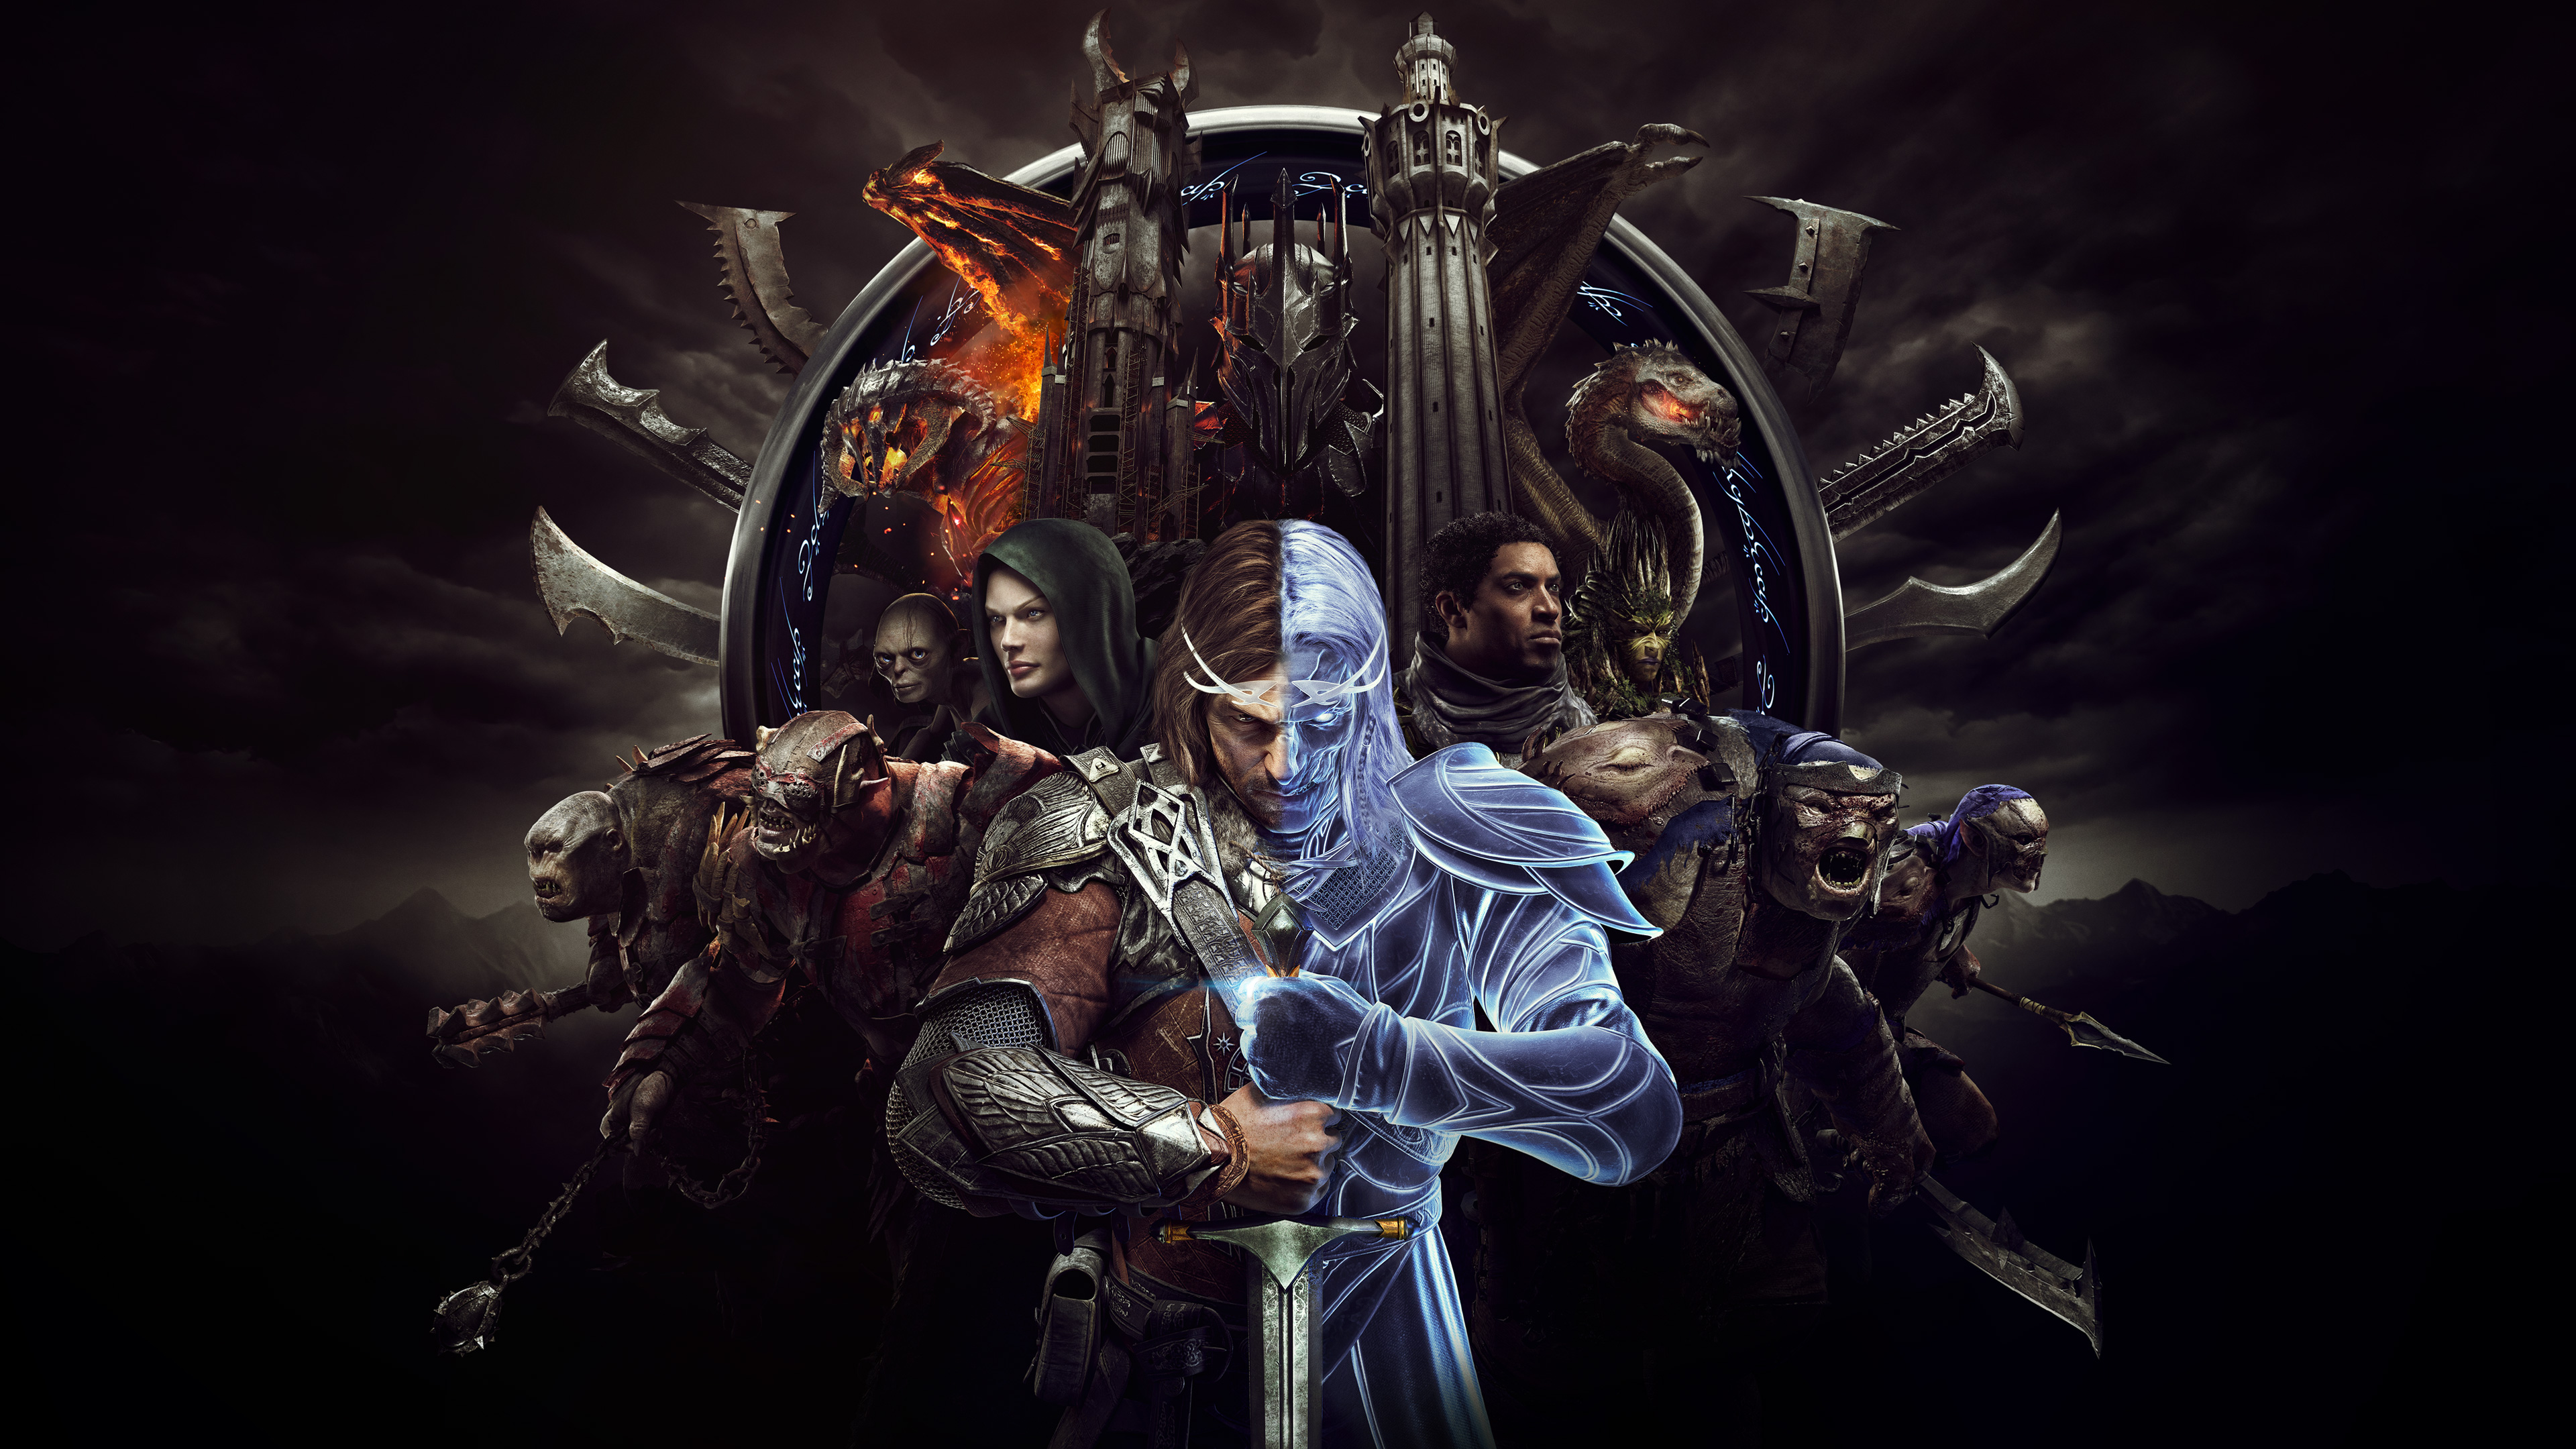 Wallpaper 4k Middle Earth Shadow Of War 4k Game 2018 Games